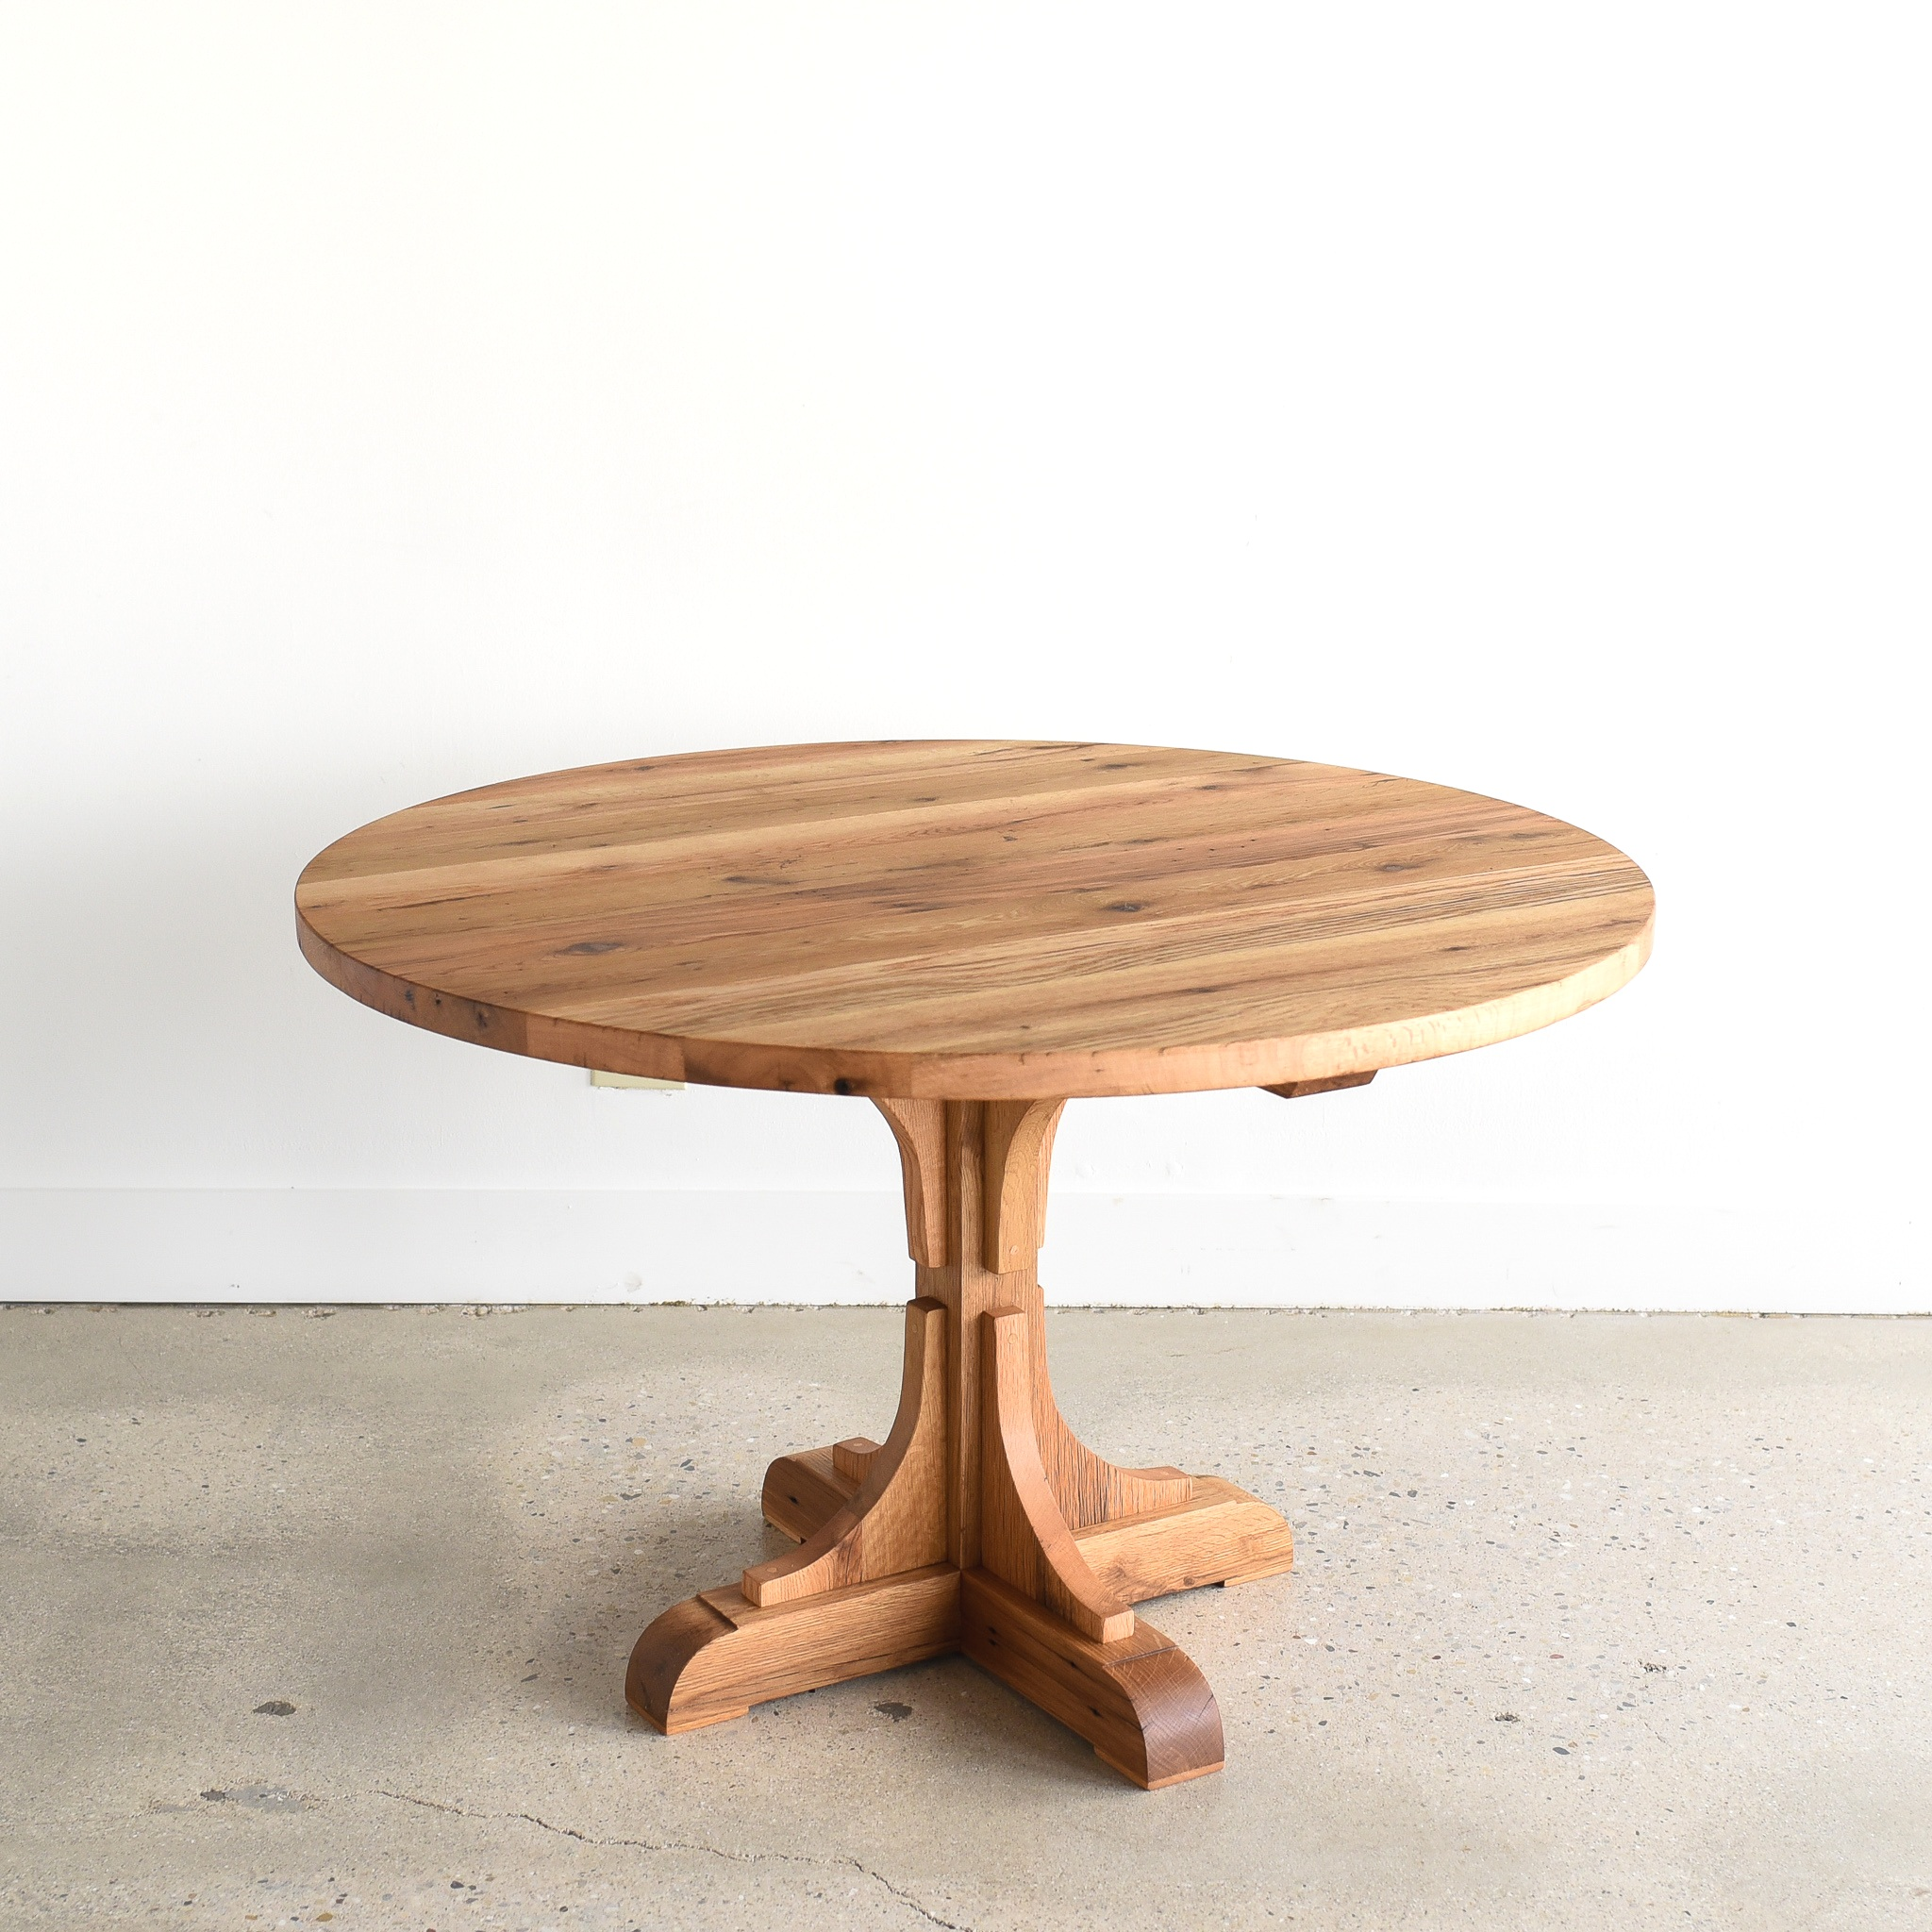 Reclaimed Wood Round Dining Table Pedestal Base What We Make